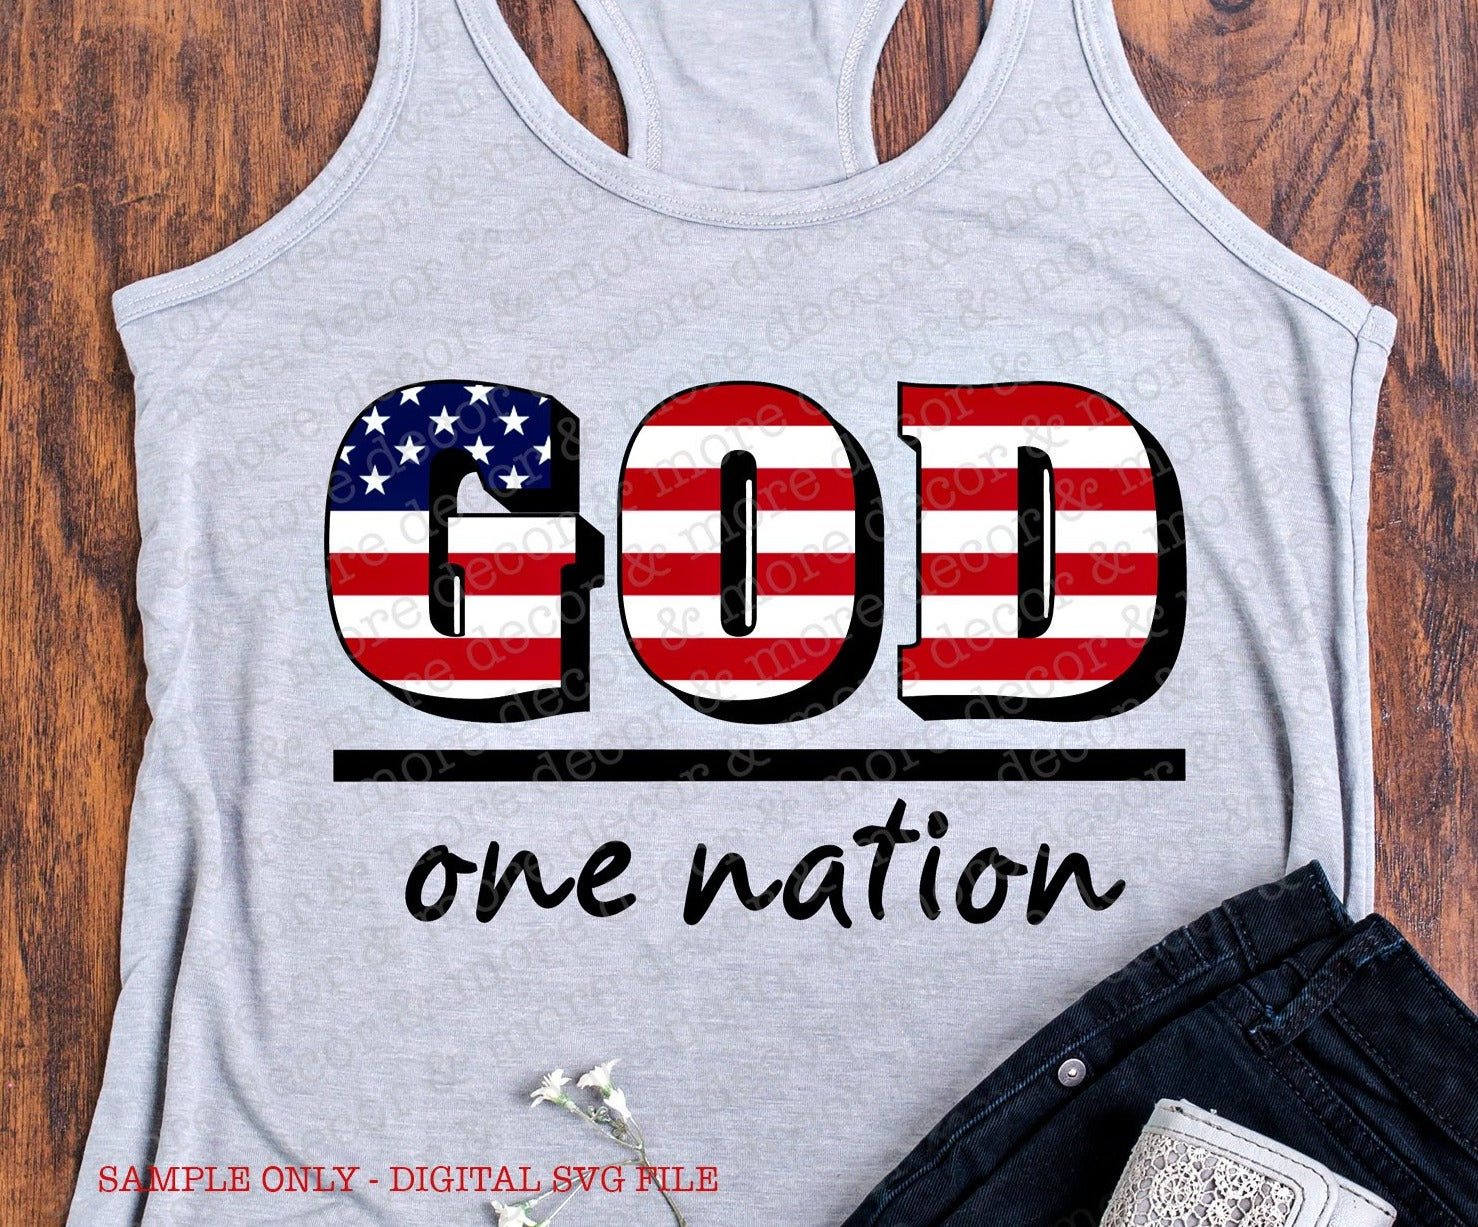 One Nation Under God SVG File, 4th of July SVG, July Fourth SVG, Patriotic Svg, Religious Svg, Svg Files for Cricut, Fourth of July Decal